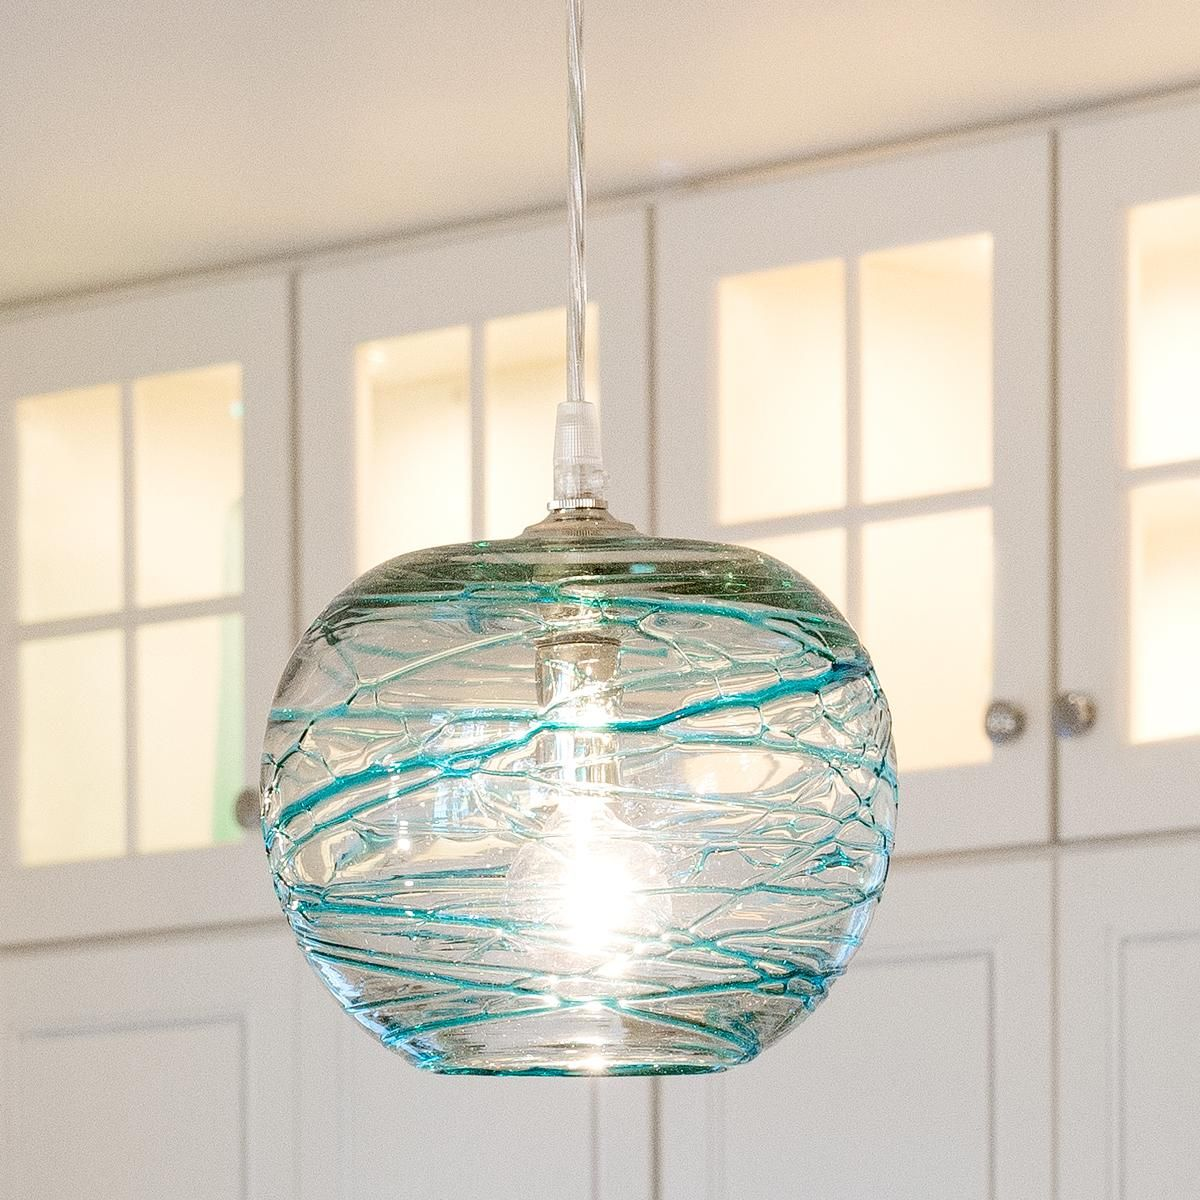 Swirling Glass Globe Mini Pendant Light | Mini pendant lights ...